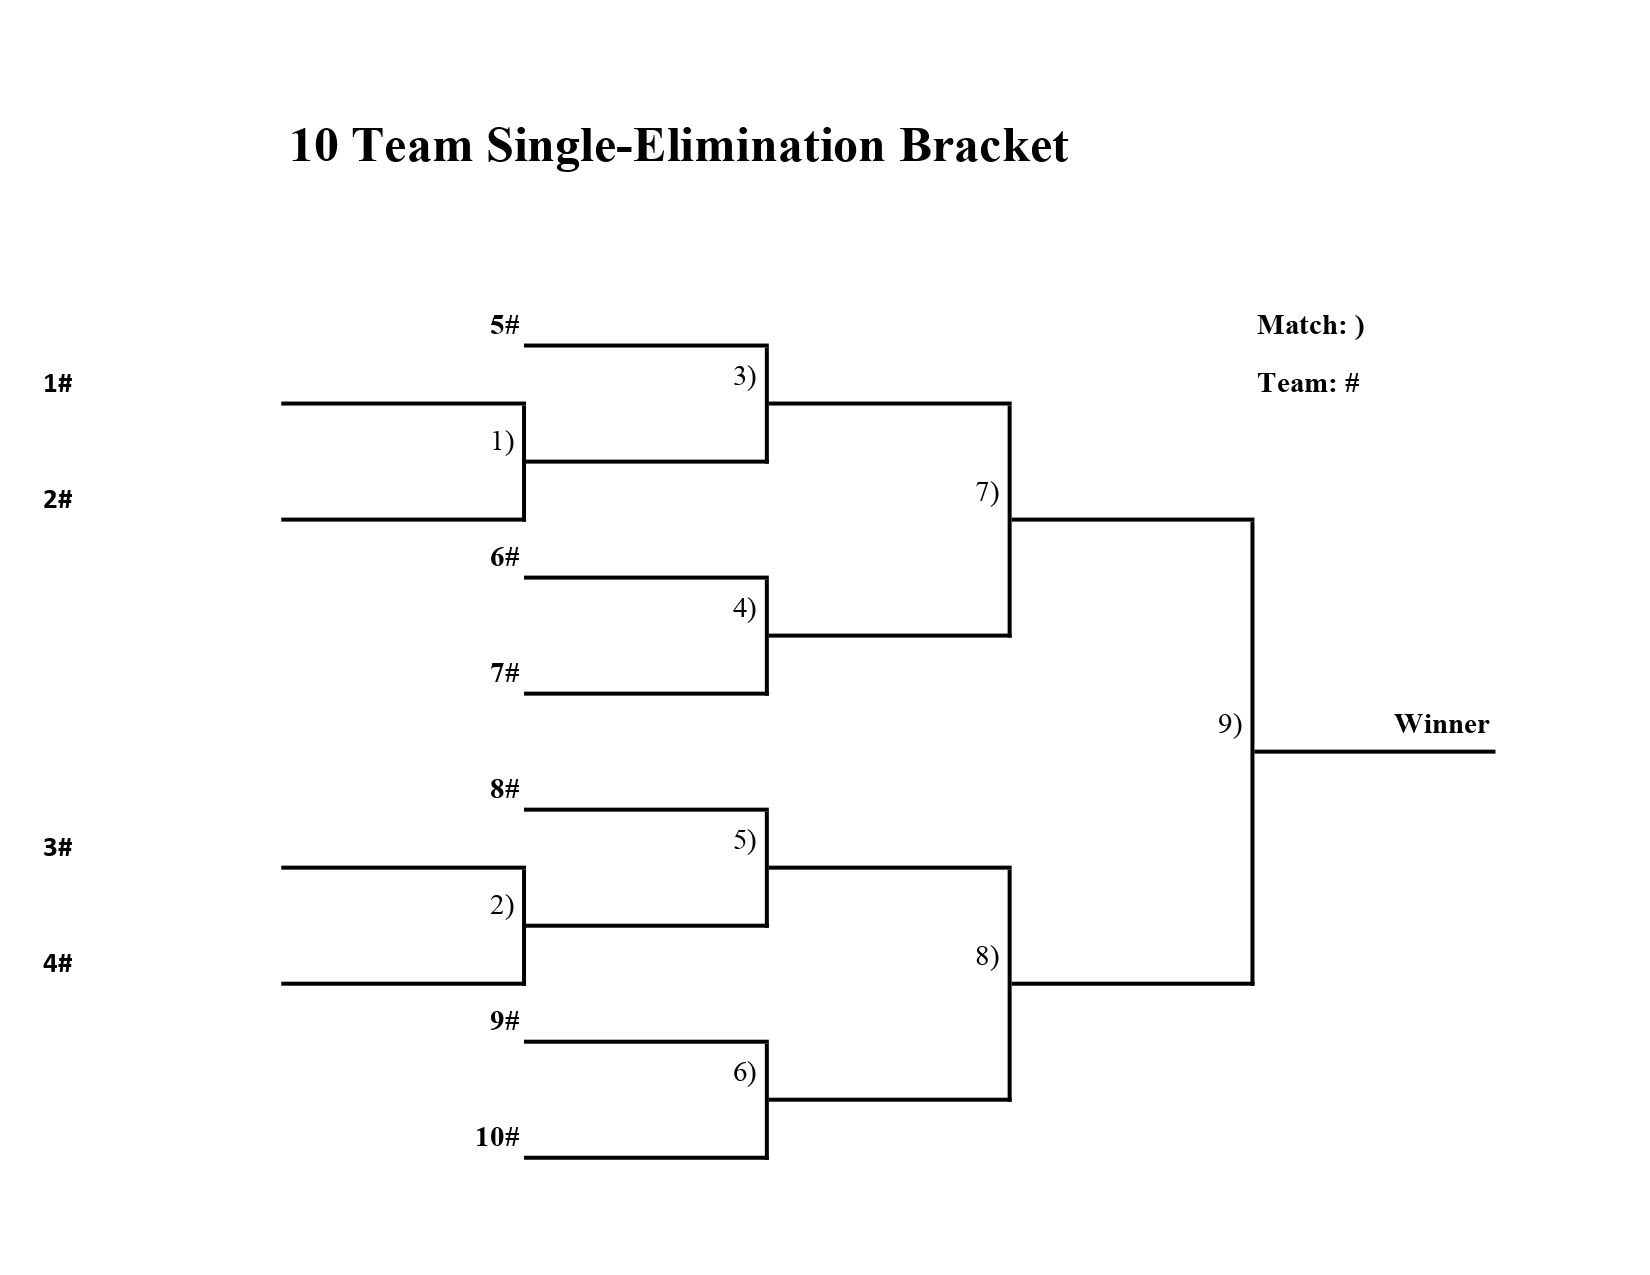 10 team single elimination bracket